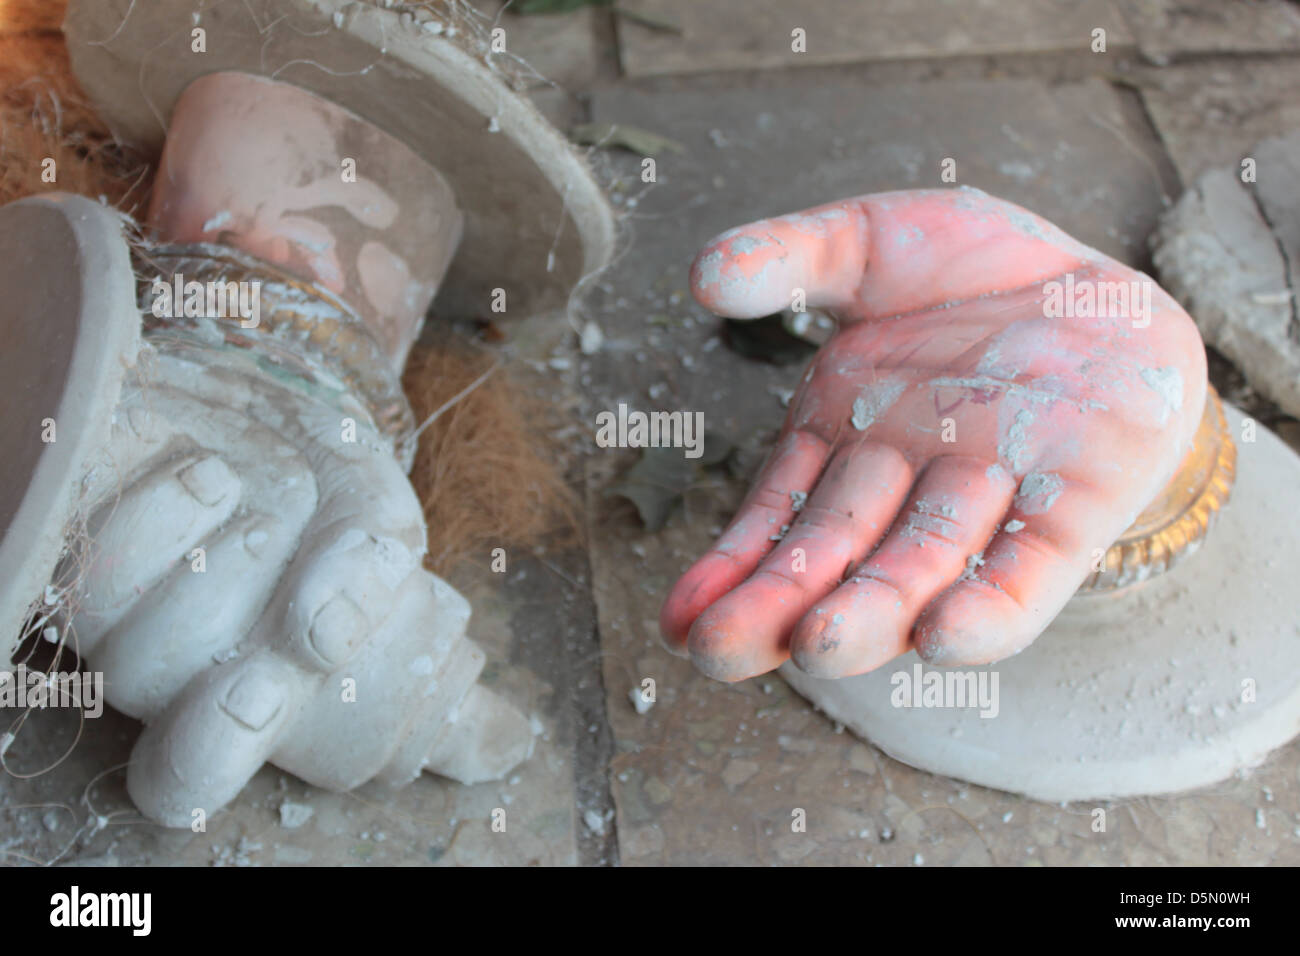 The incomplete hands of the idol of Lord Ganesh lie in a craftsman home in the Gulbai Tekra area of Ahmedabad, Gujarat, - Stock Image